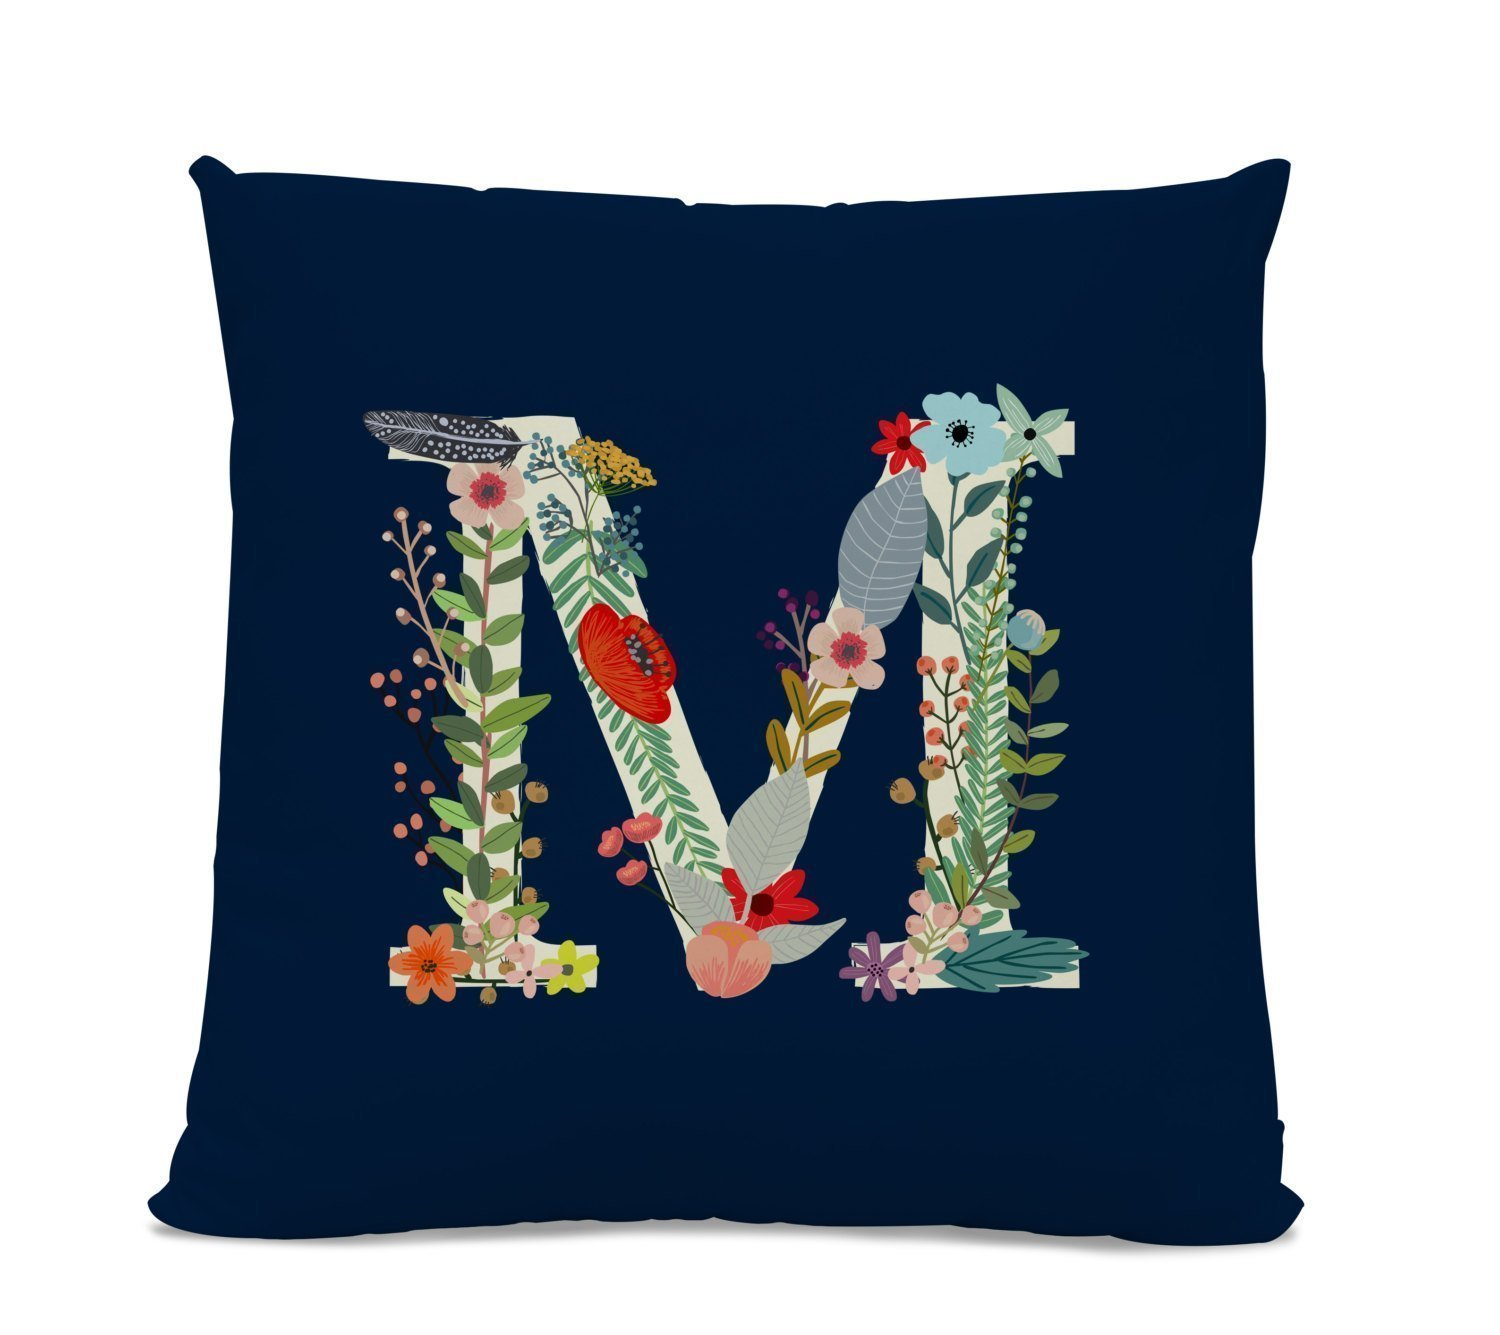 stay m farmhouse cover awhile your size new pillow inspirational with initial choose of monogrammed cheap pillows letter